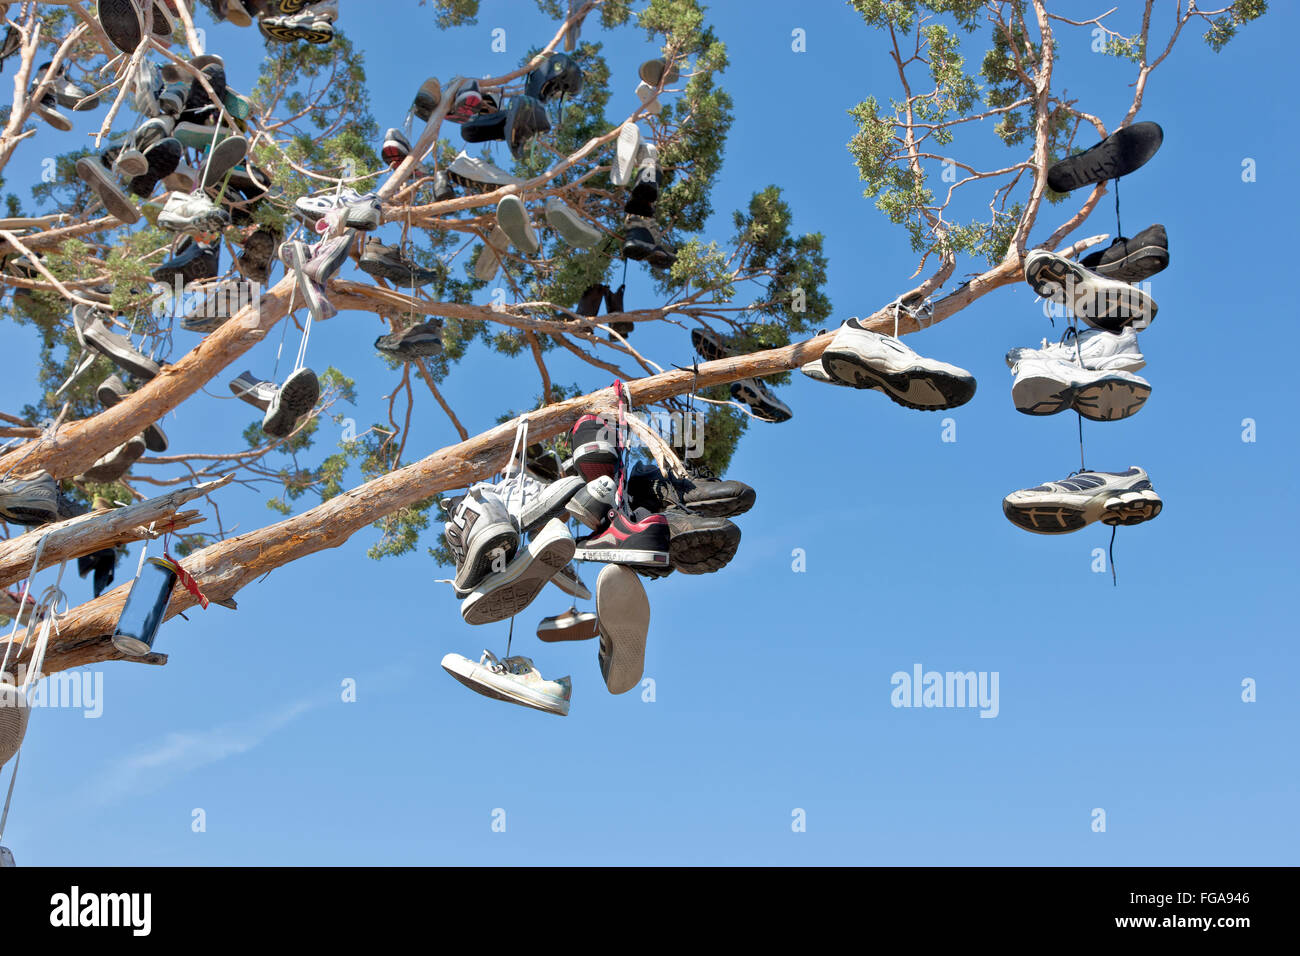 Evergreen tree branch,  suspended unwanted footwear of various styles & sizes slung up by passing motorists. - Stock Image